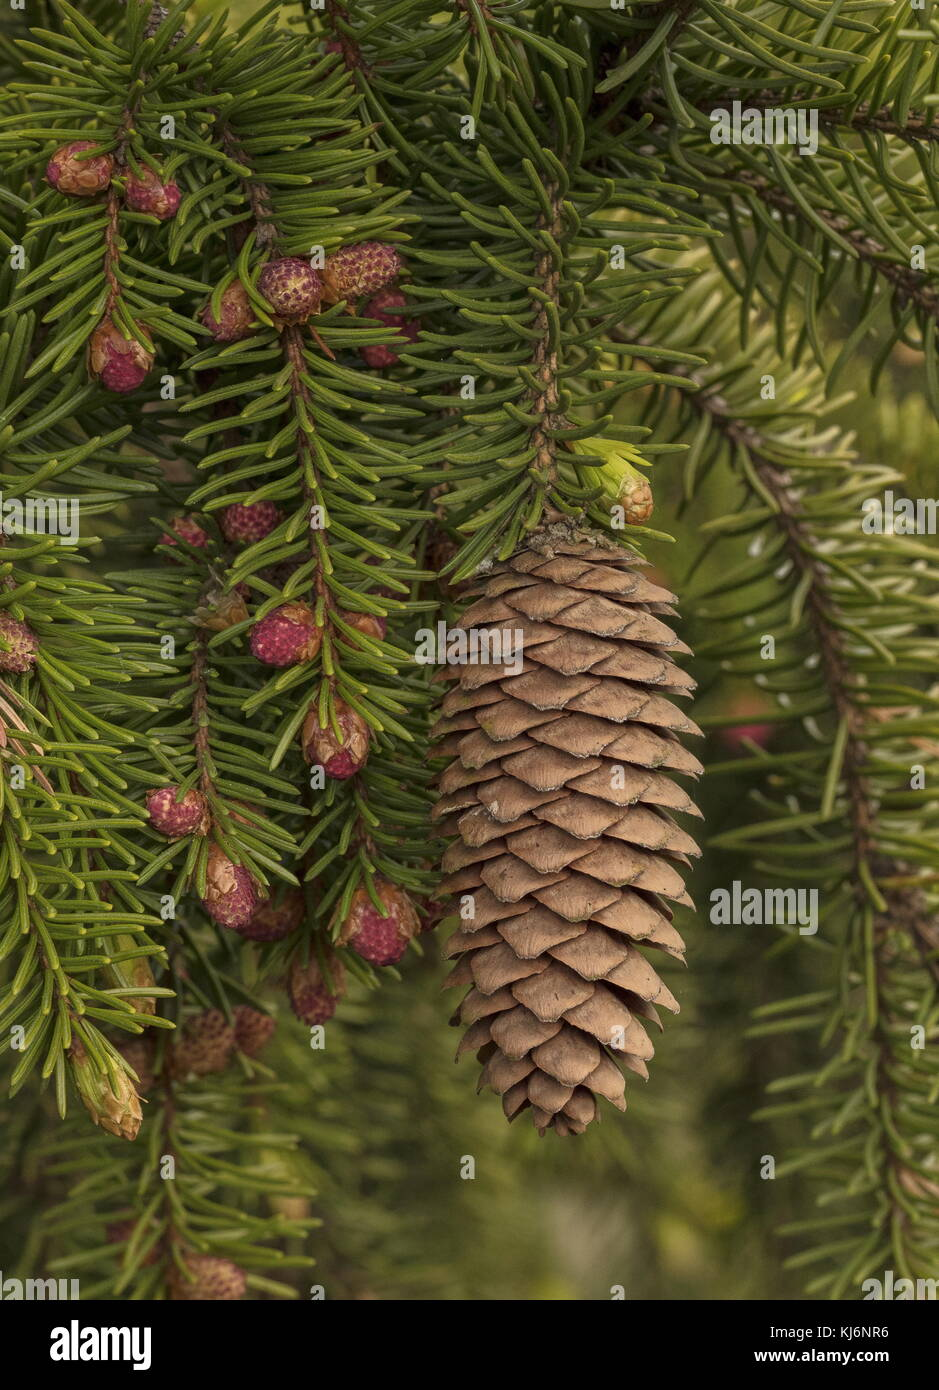 Male and Female cones of Norway Spruce, Picea abies, with foliage. - Stock Image